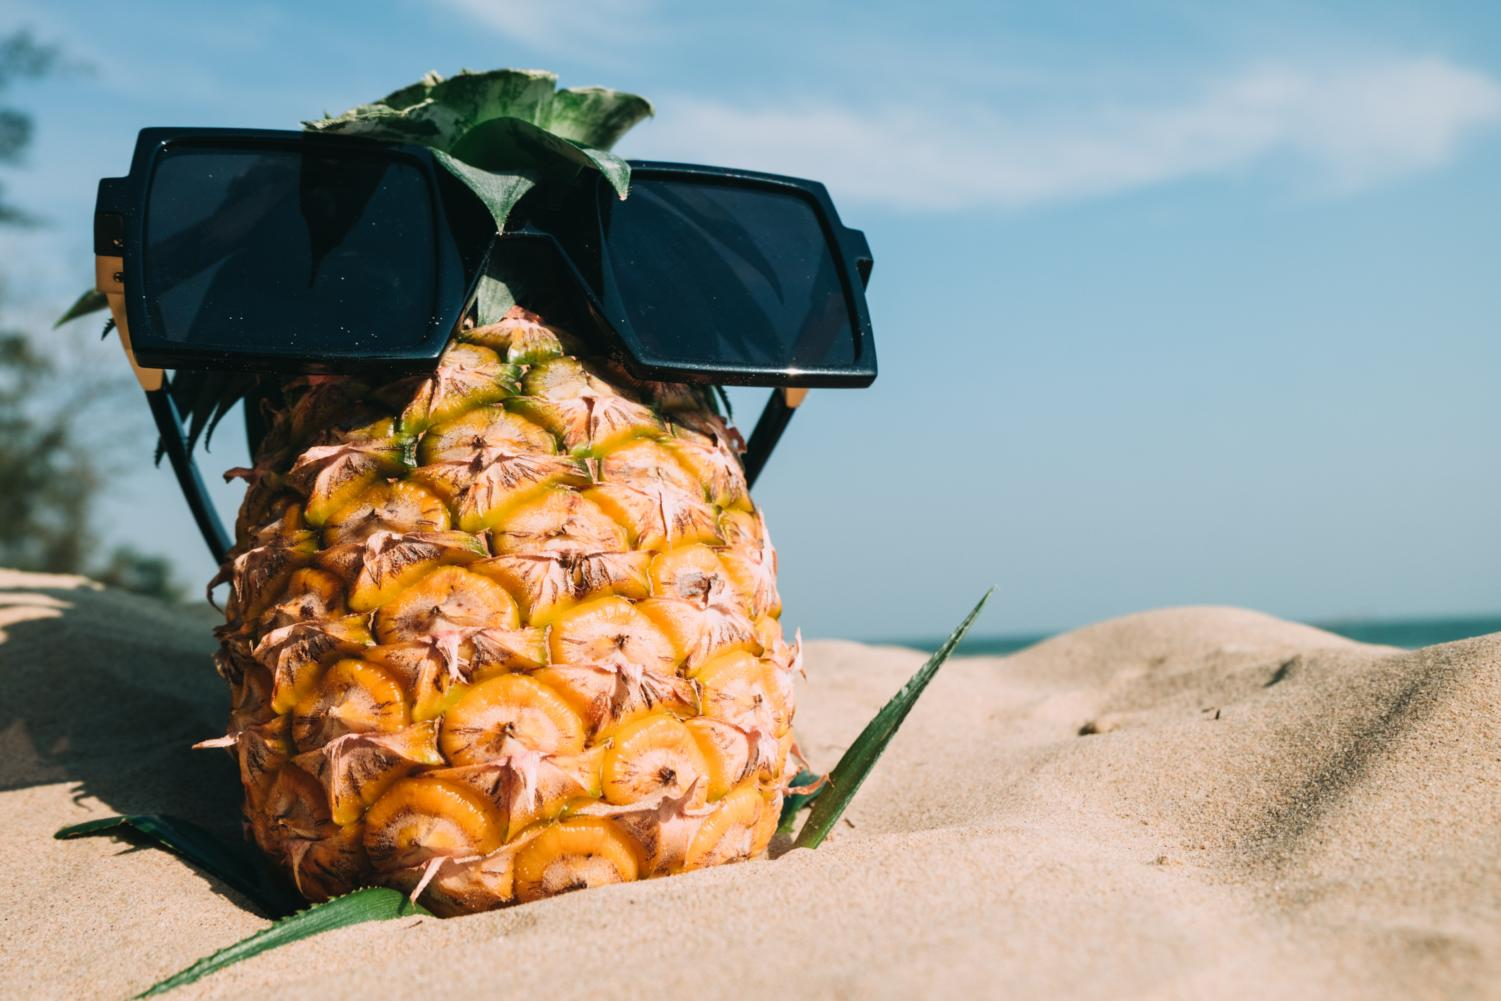 This summer, you can chill in style. Go bananas! (or pineapples!)